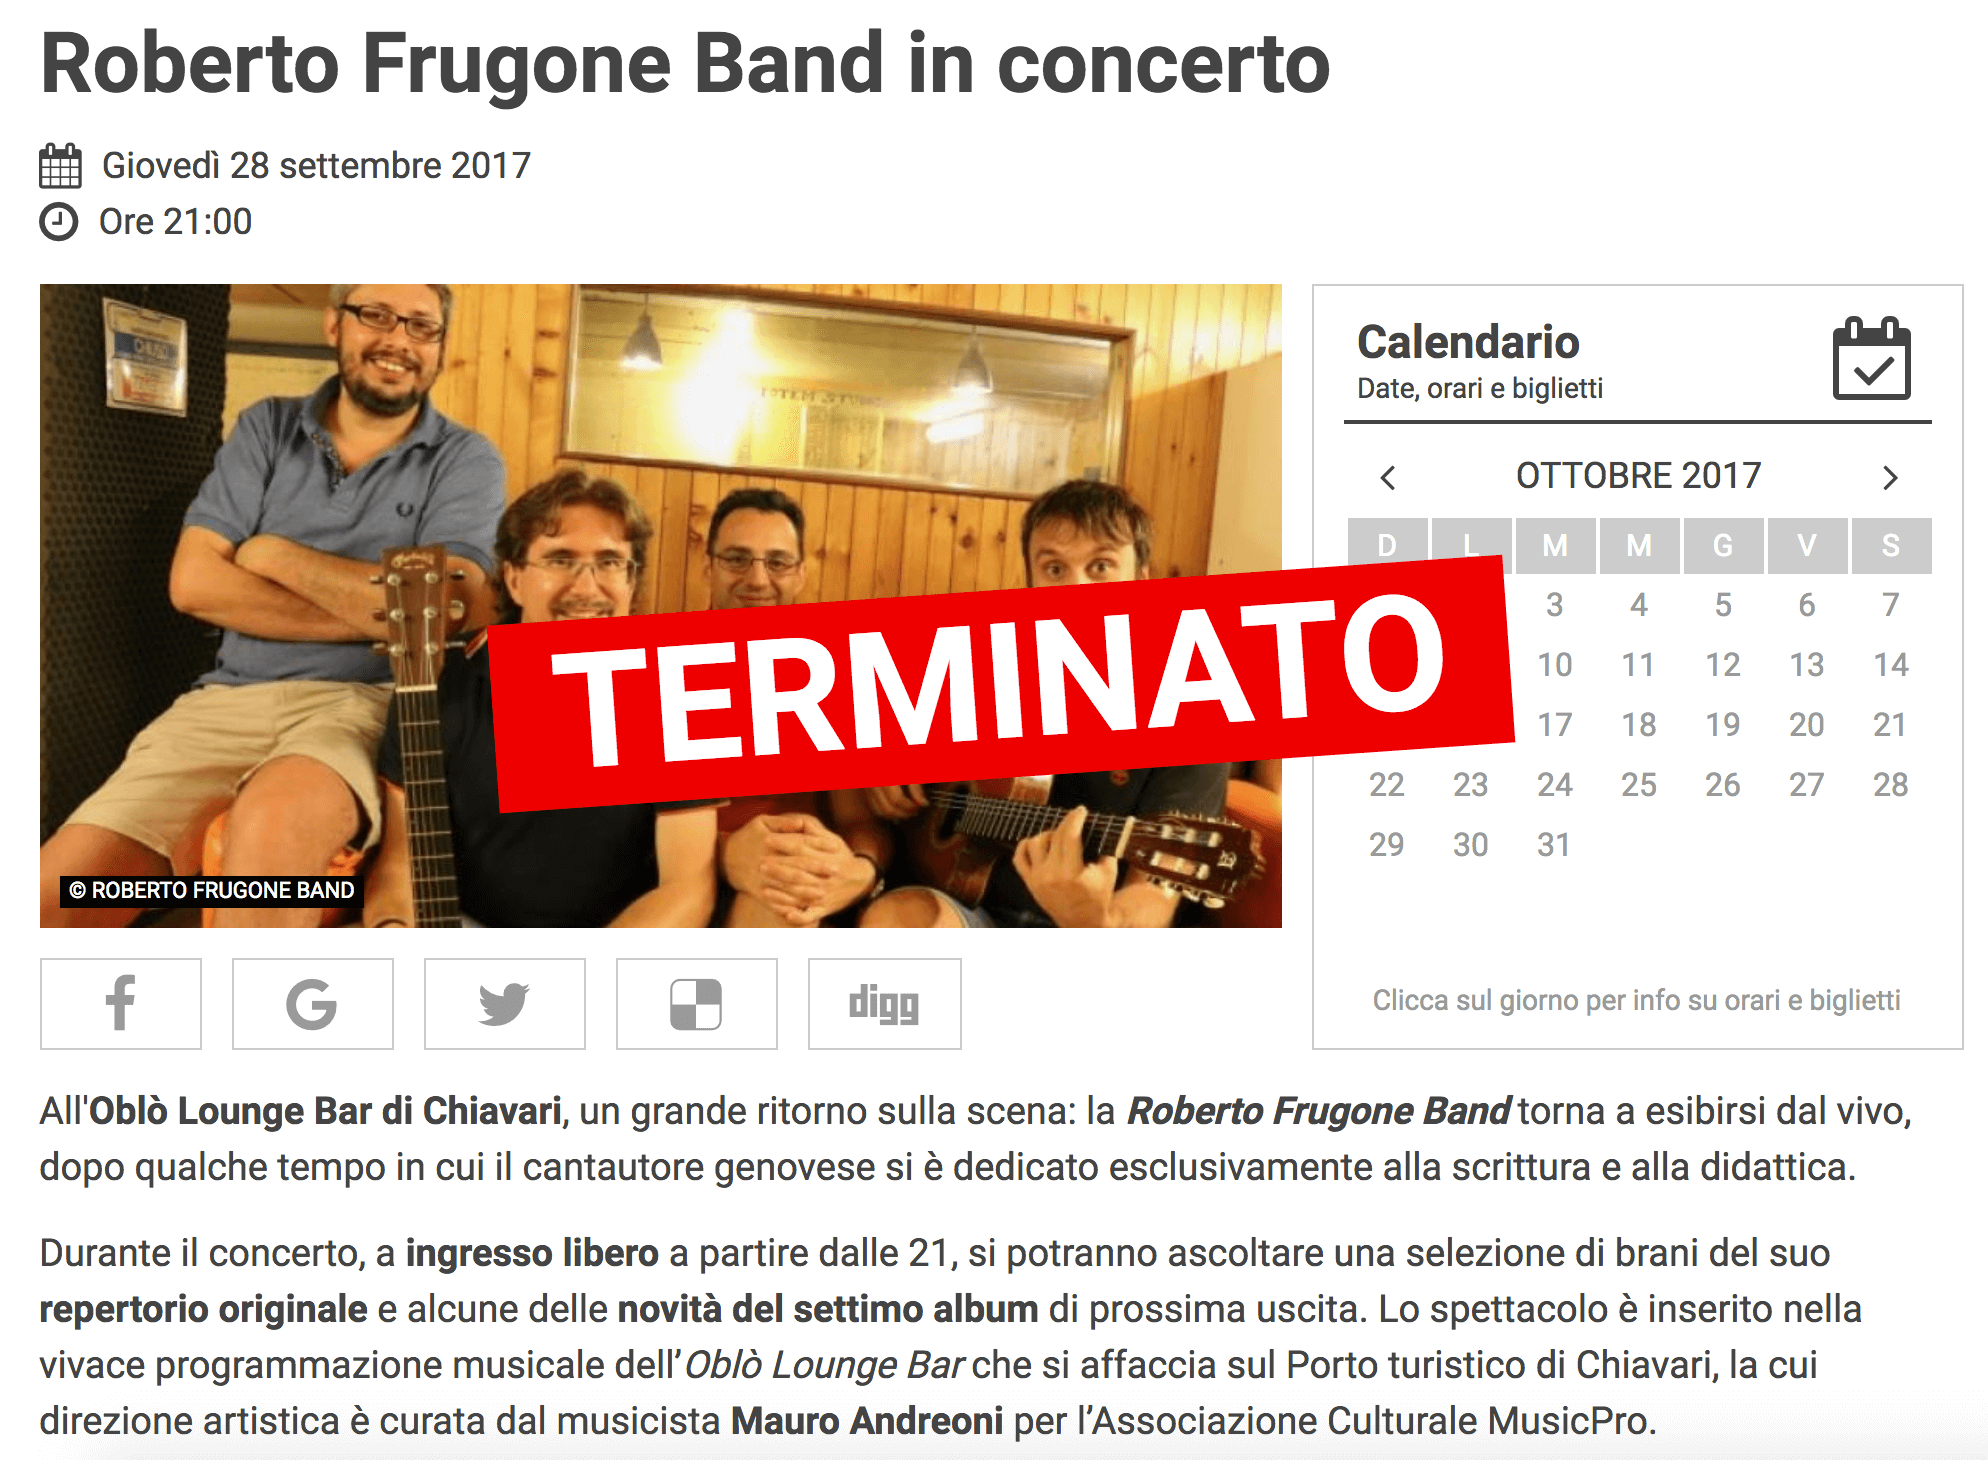 2017.09.28 Mentelocale - Roberto Frugone Band in concerto